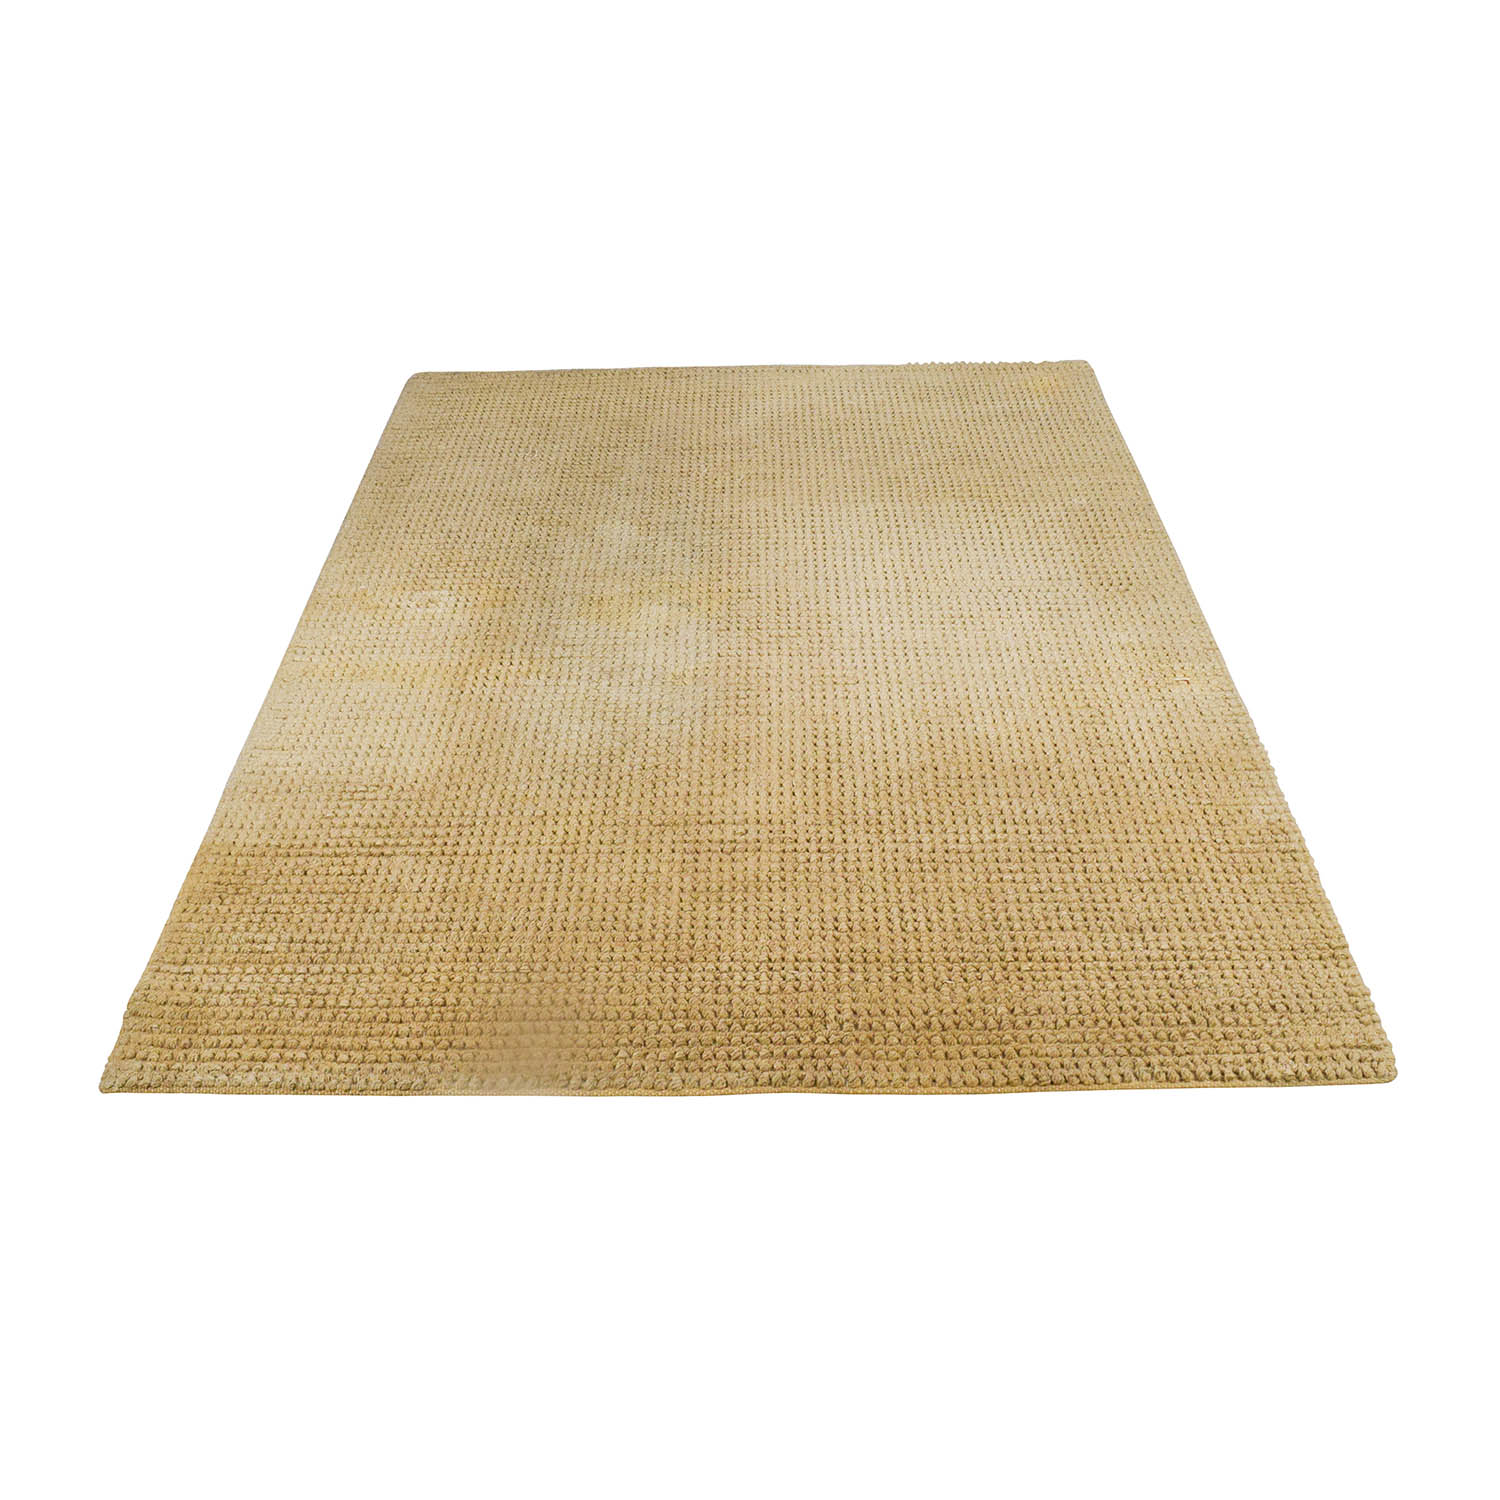 Restoration Hardware Restoration Hardware Ben Soleimani Rug second hand